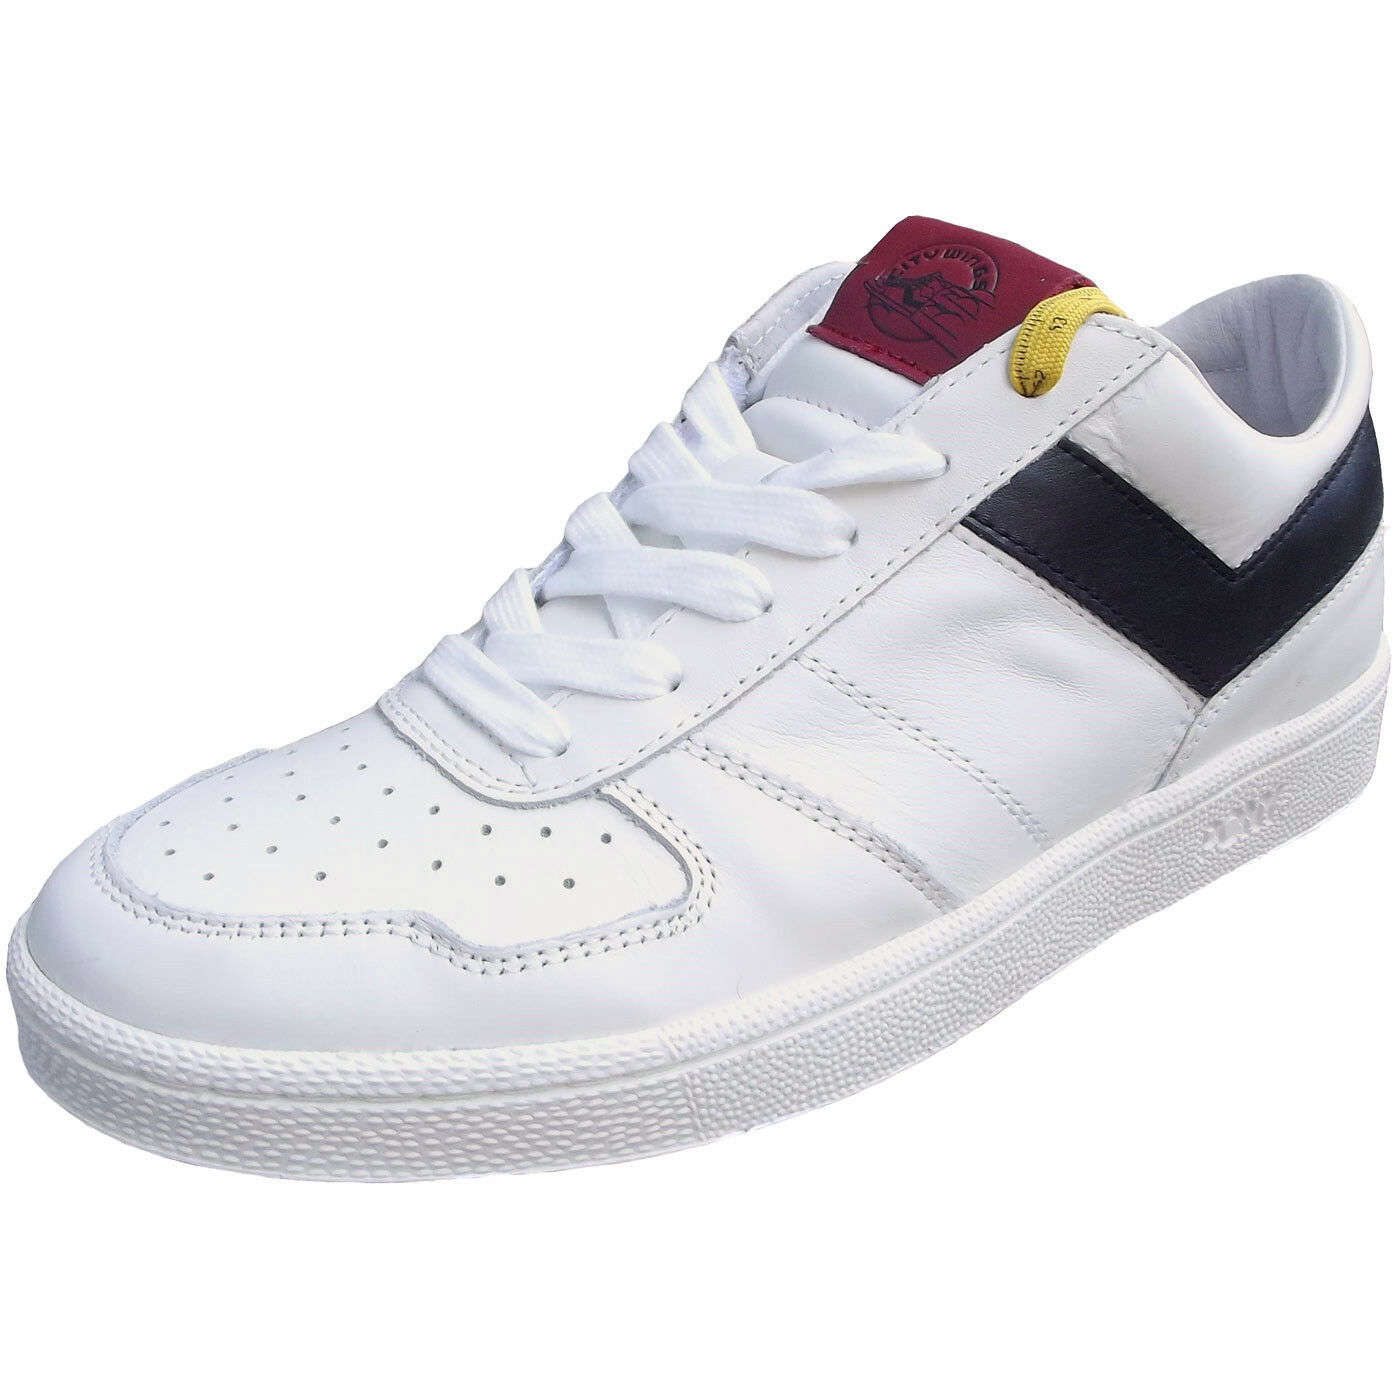 Pony City Wings Herren Sneaker marshmellow/black